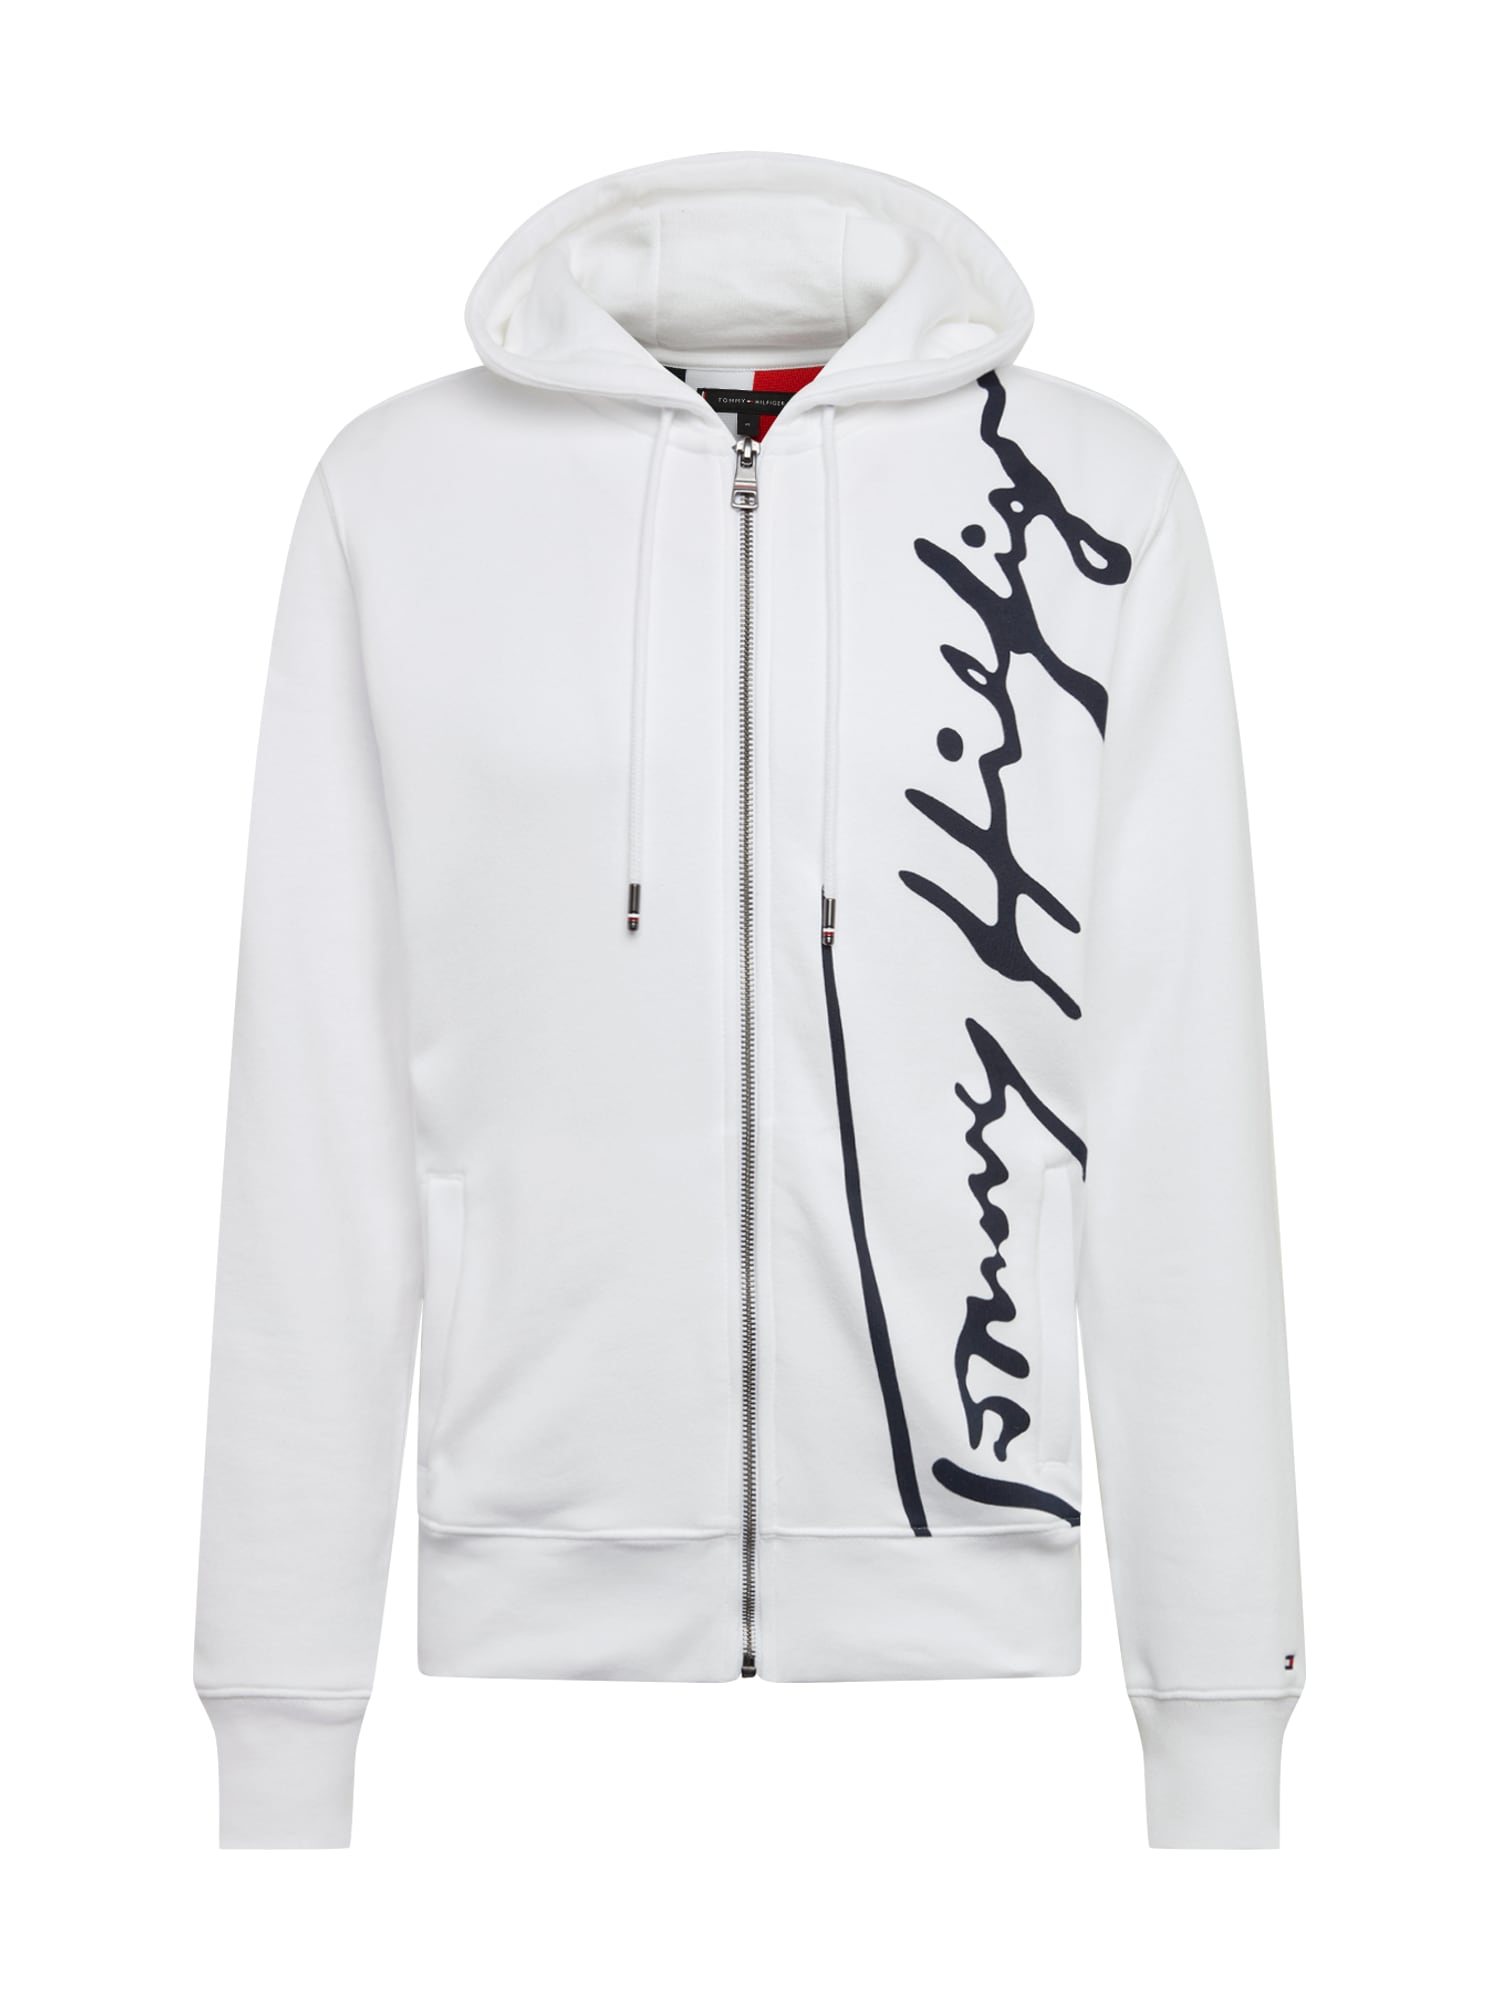 TOMMY HILFIGER Džemperis 'SIGNATURE HOODED ZIP THROUGH' balta